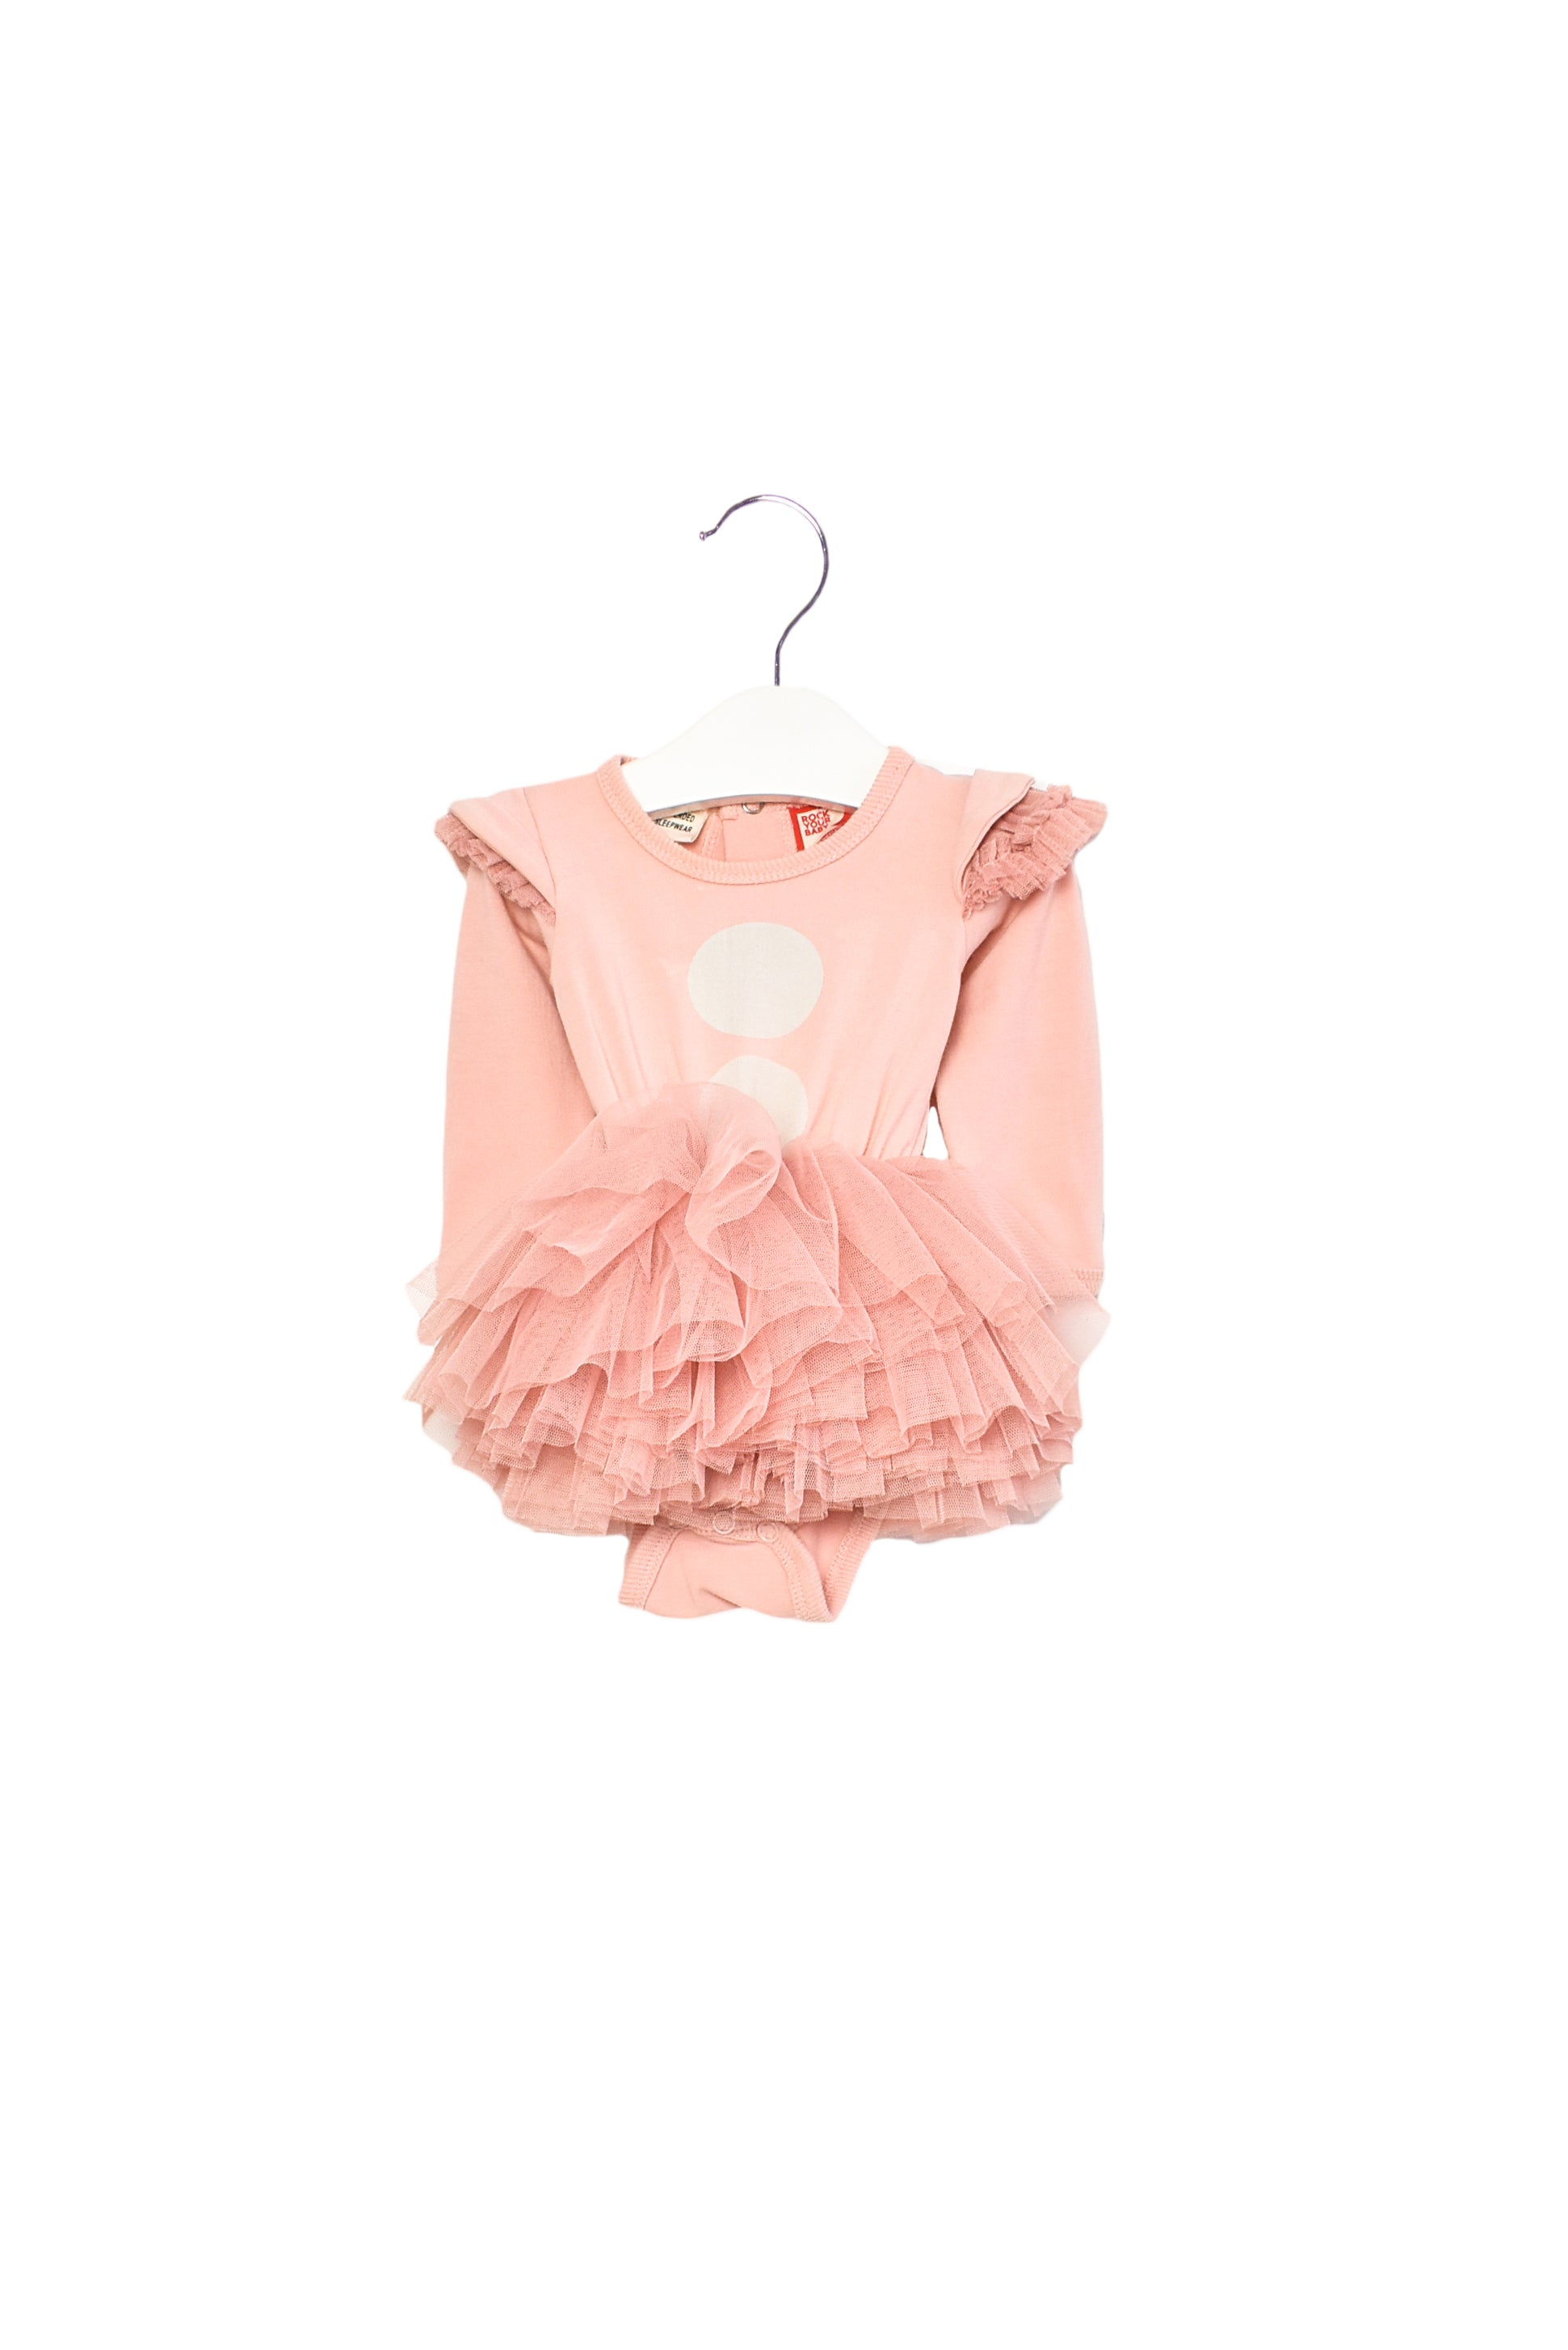 10012157 Rock Your Baby ~ Romper Dress 0-3M at Retykle